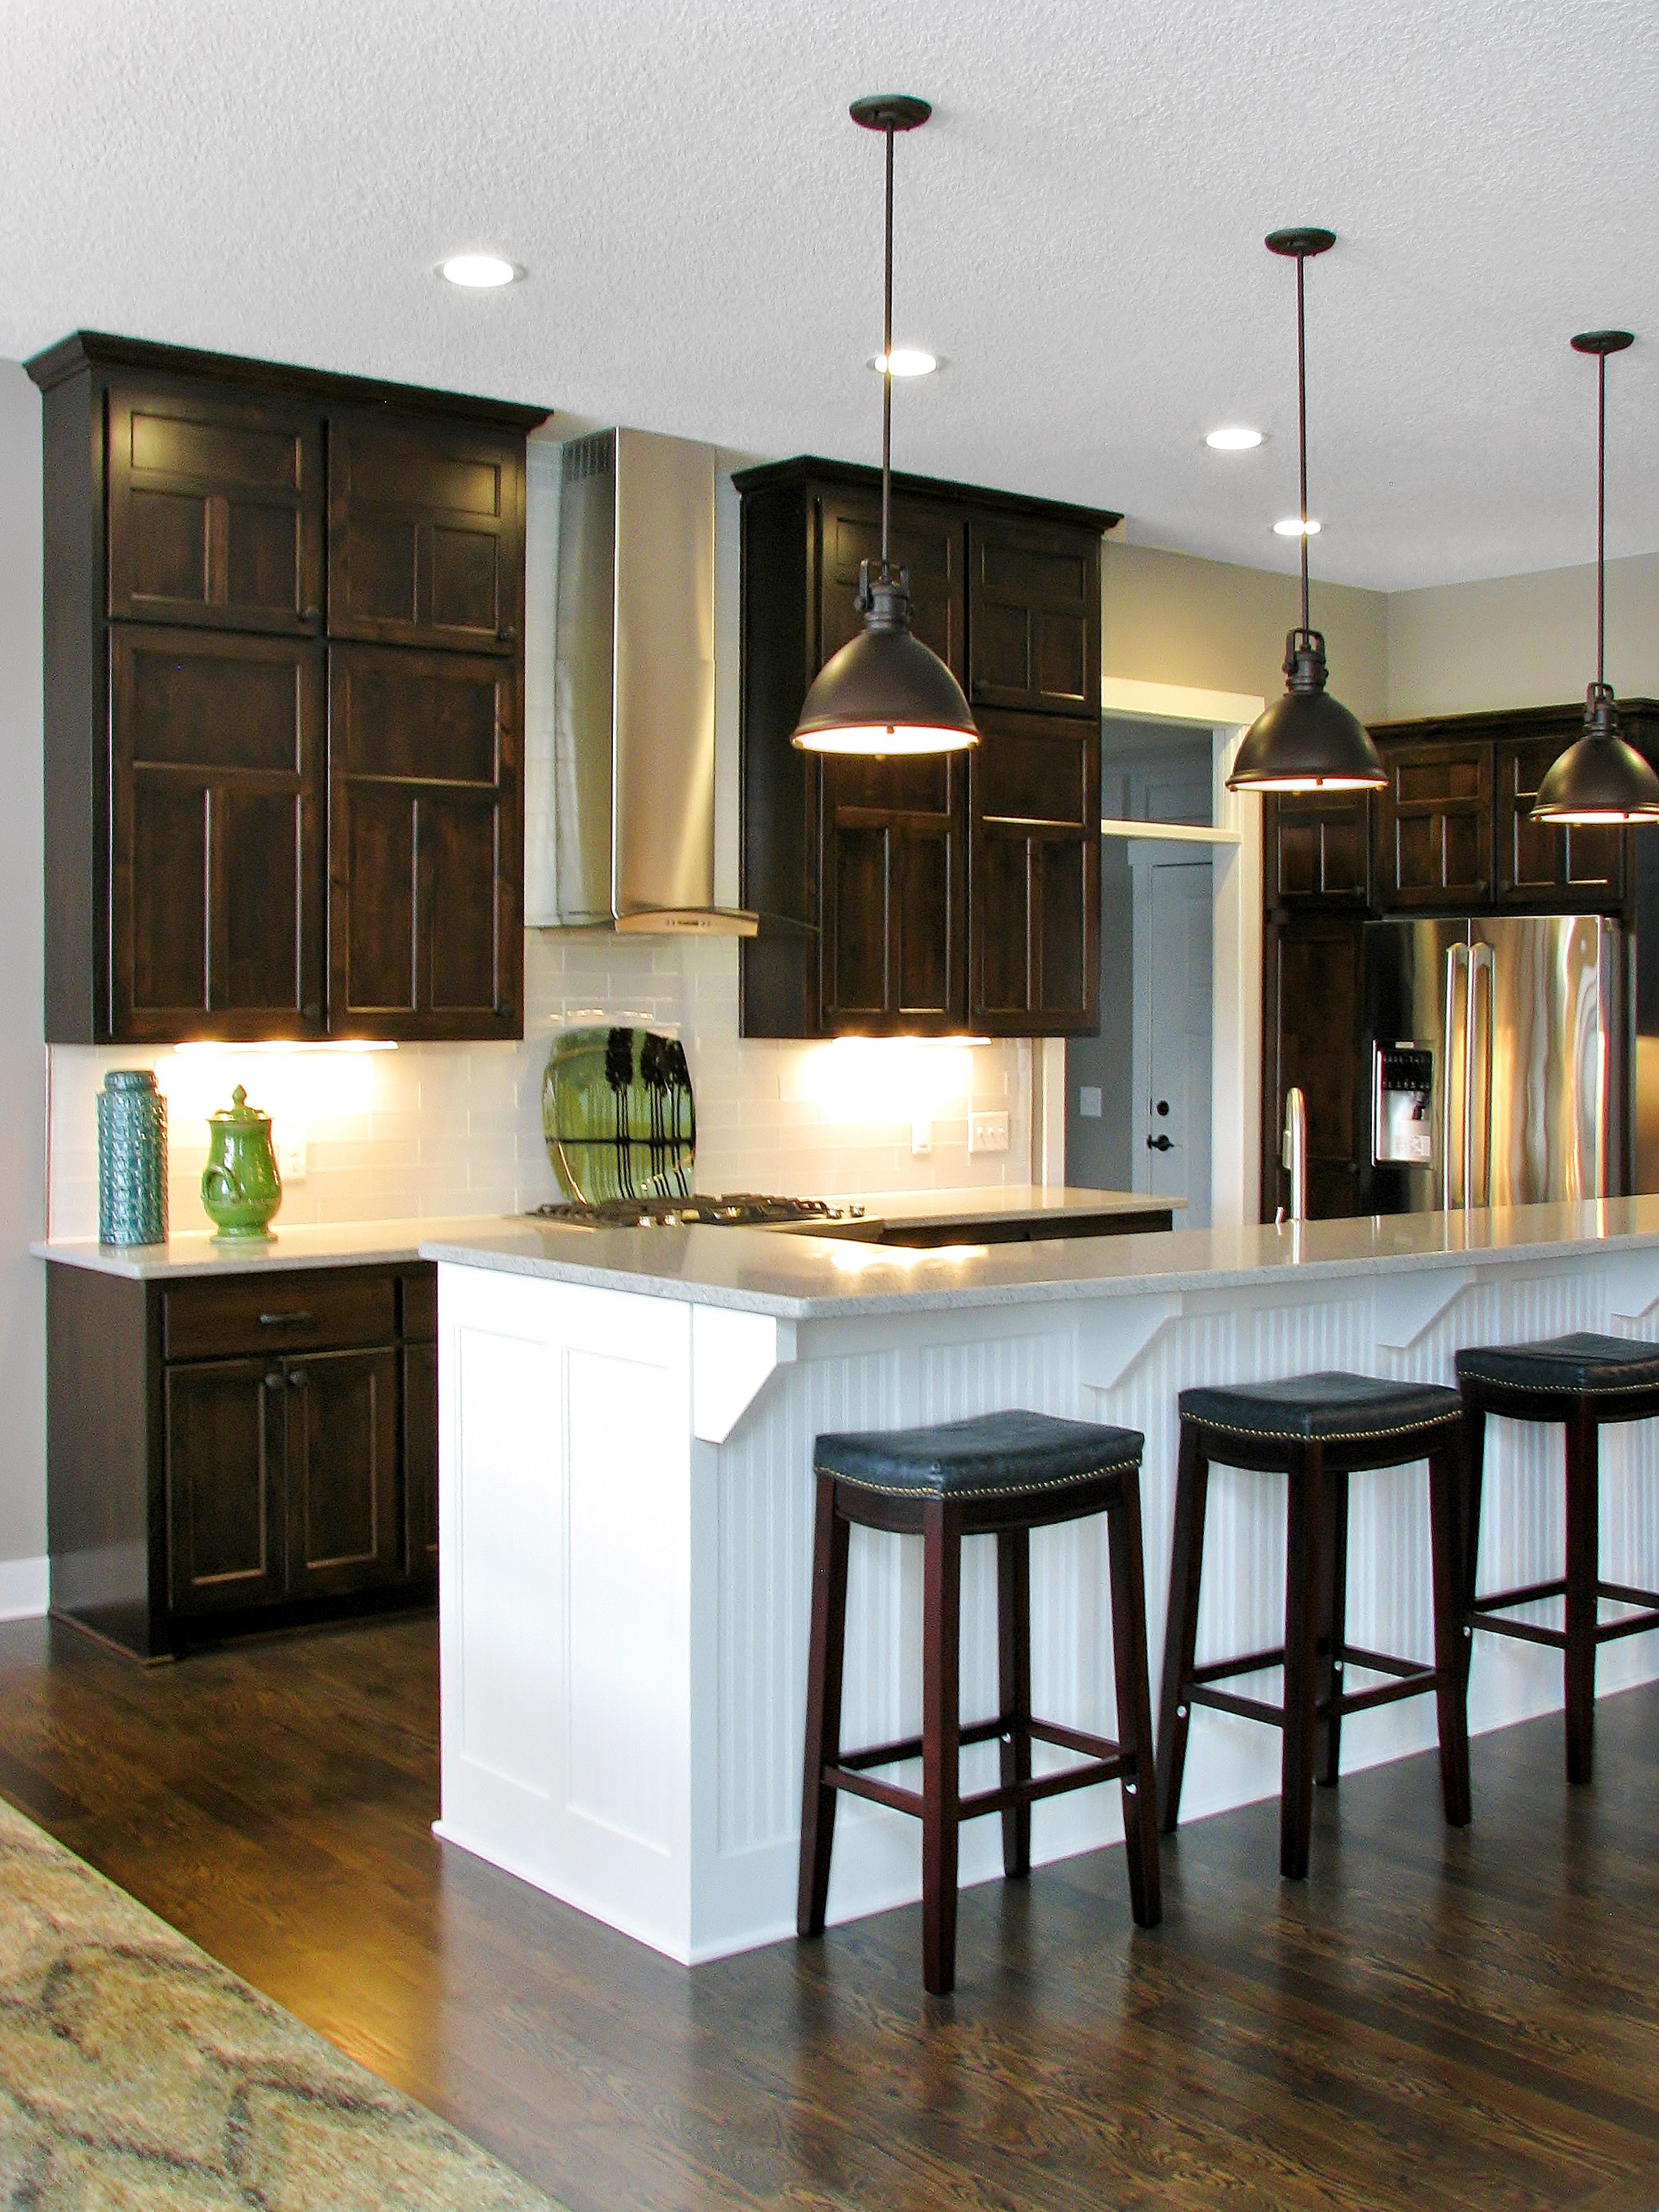 Custom Cabinets MN. Made By: Lakeside Cabinets And Woodworking